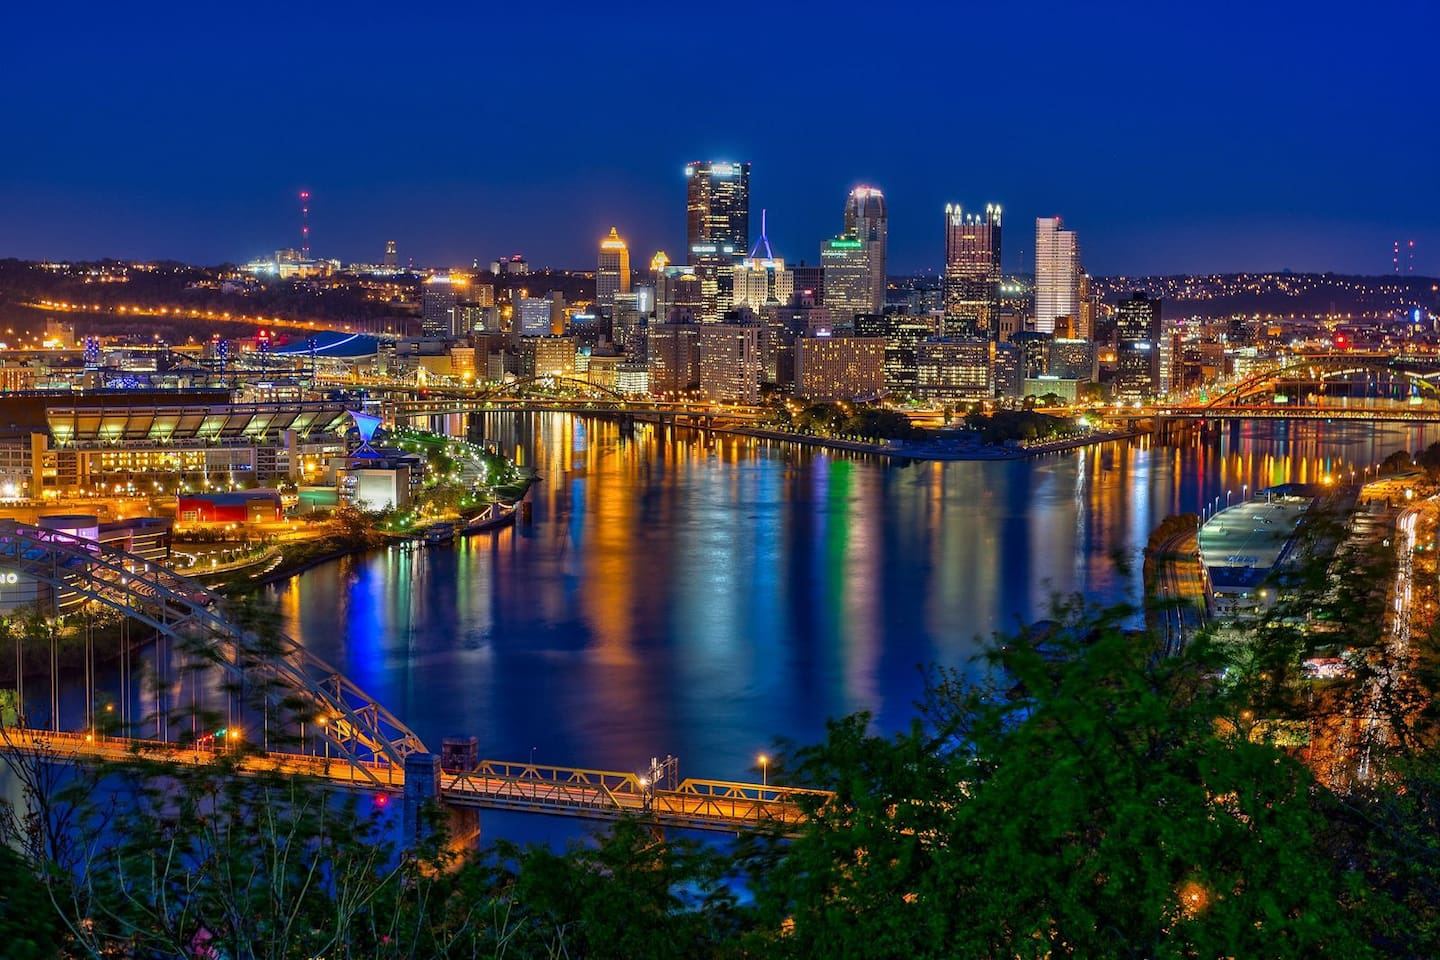 The beautiful City of Pittsburgh!